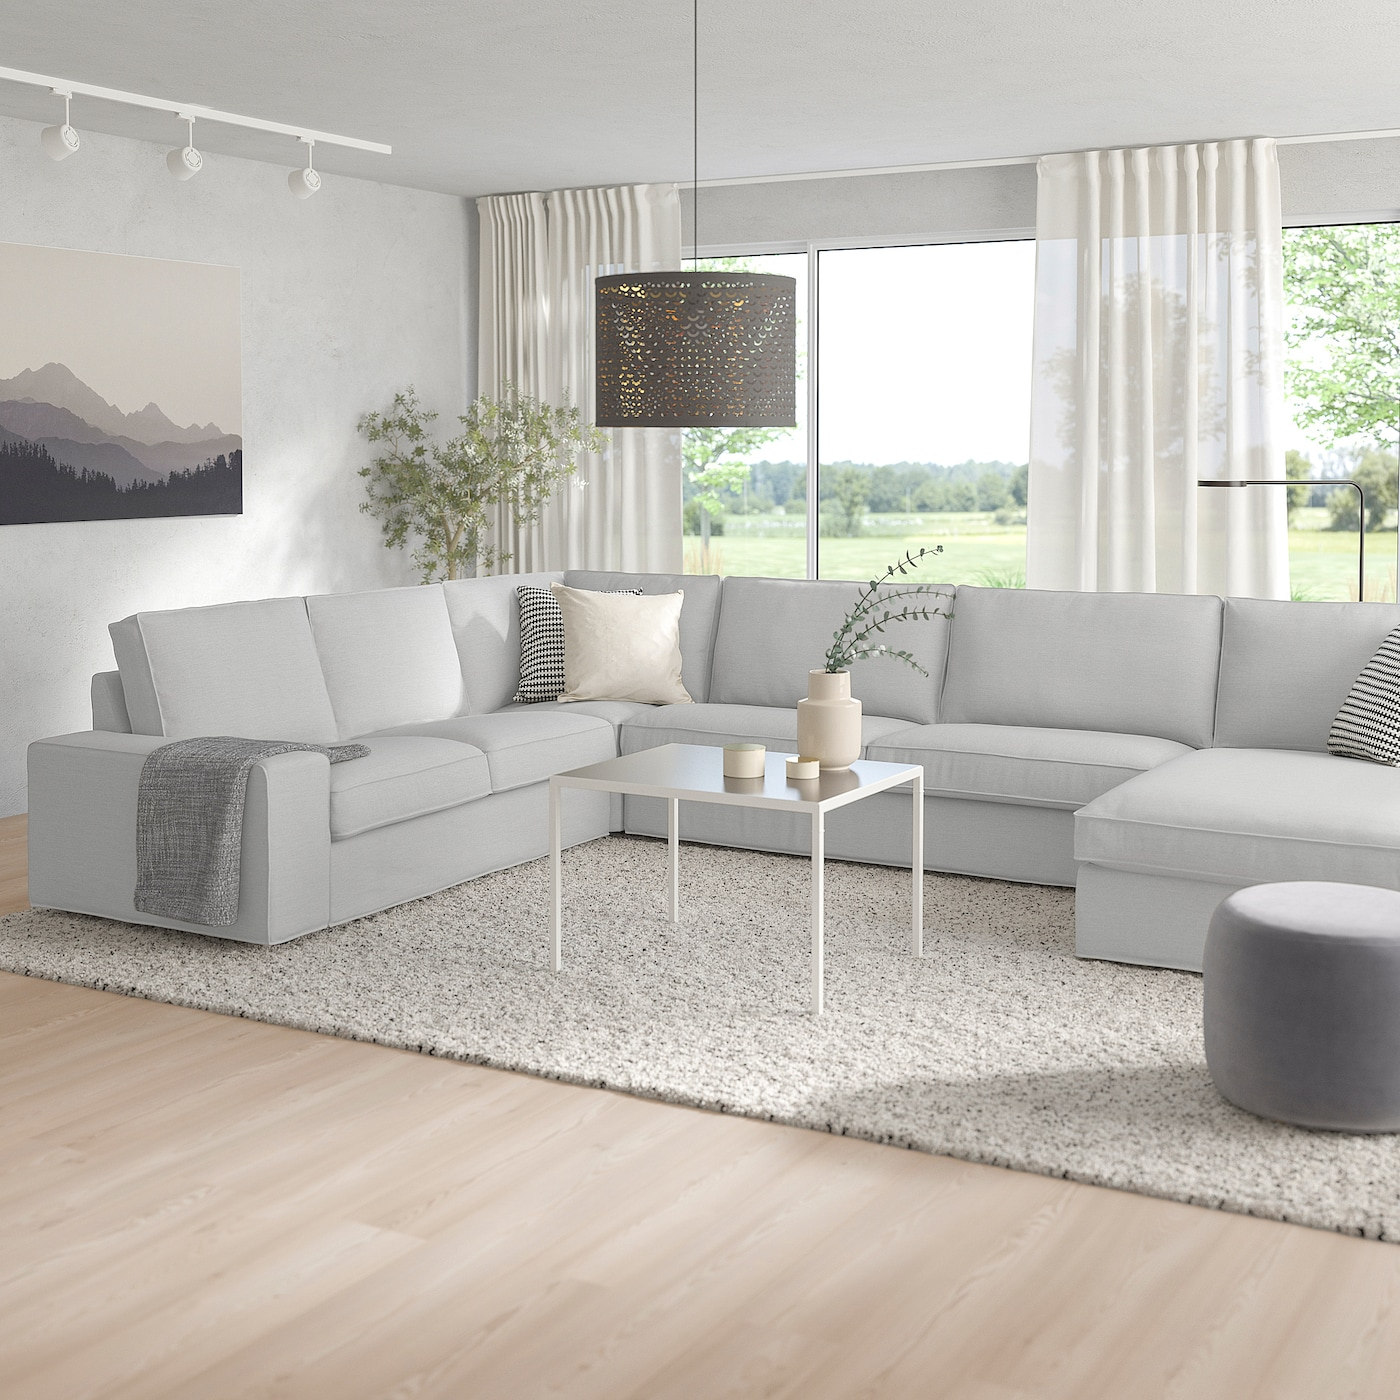 KIVIK Corner sofa, 6 seat with chaise longueOrrsta light grey